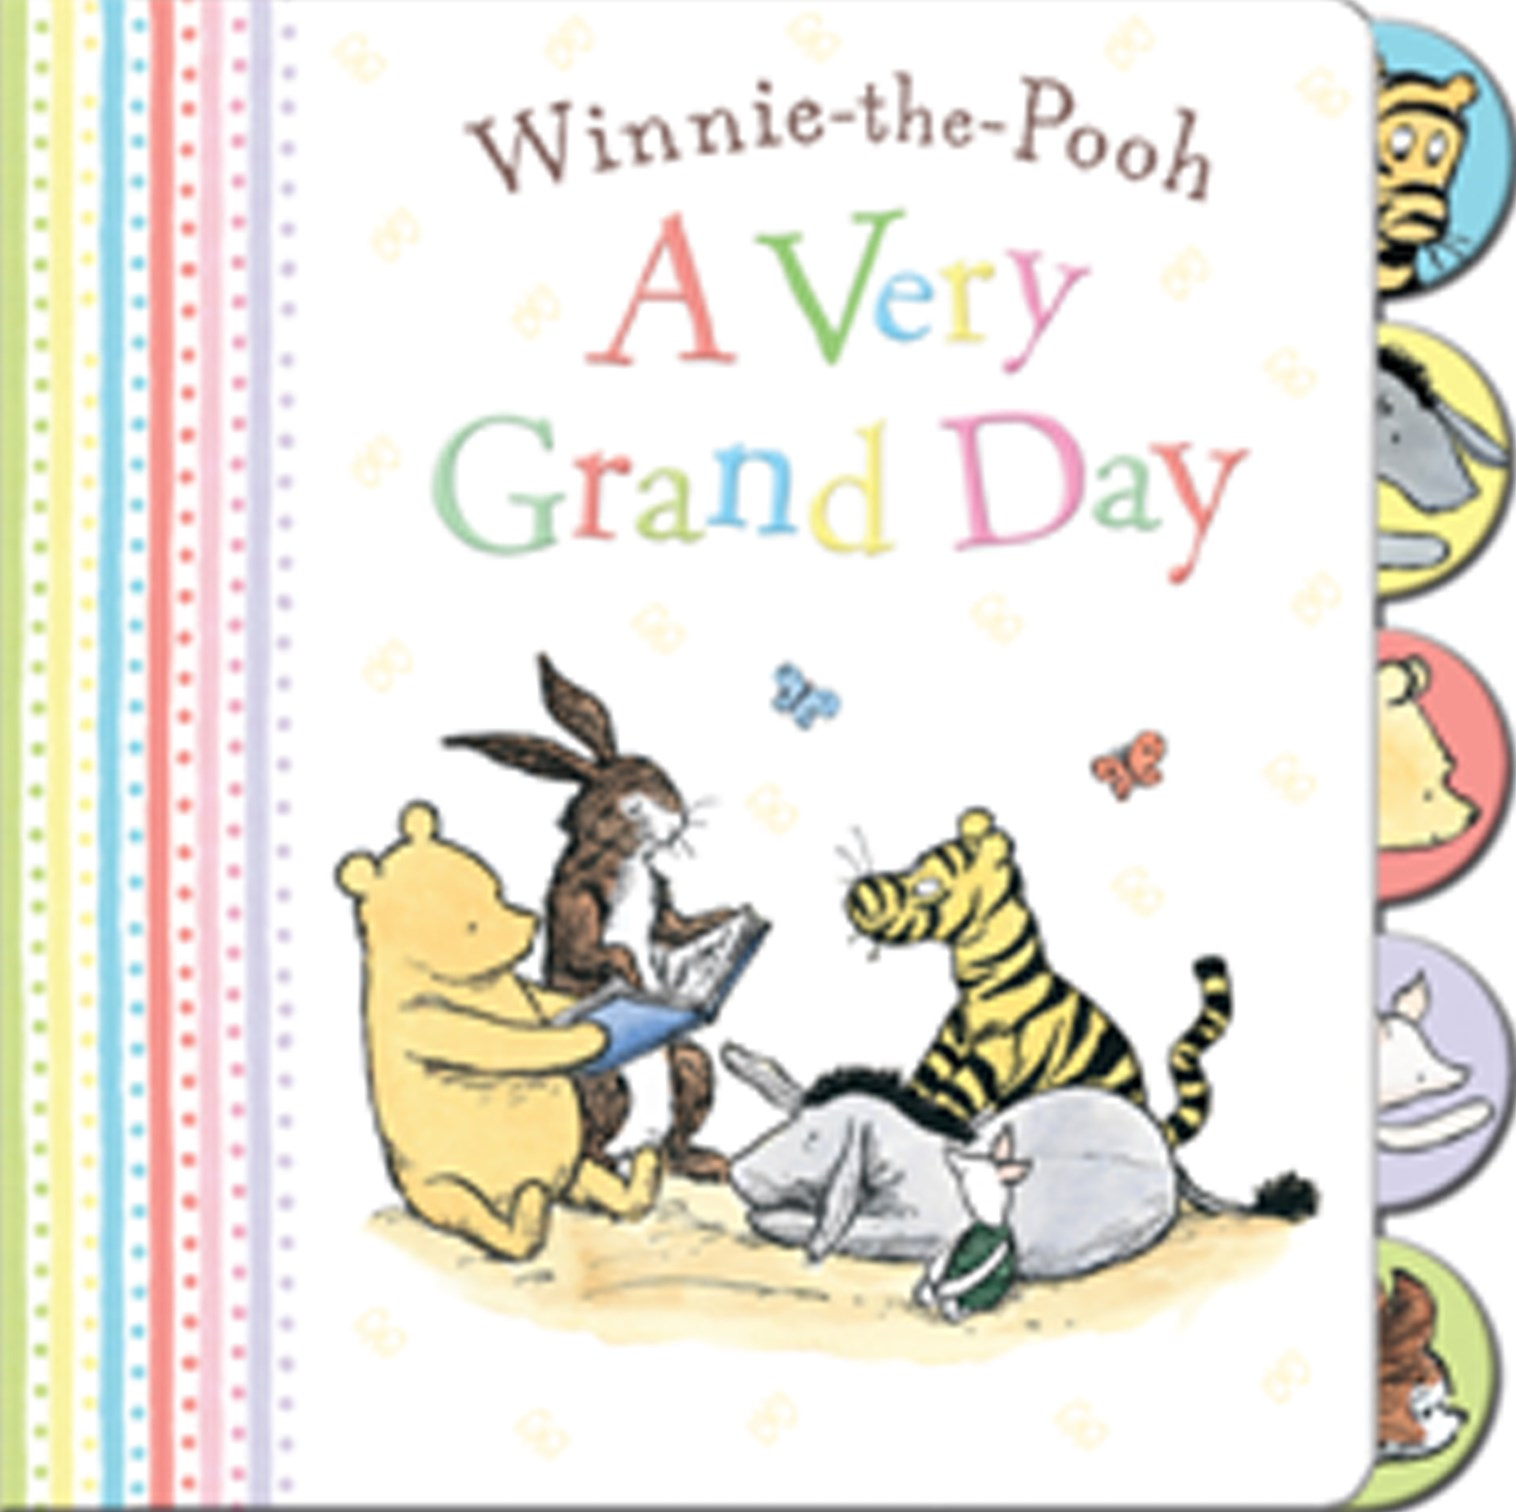 Winnie-the-Pooh a Very Grand Day